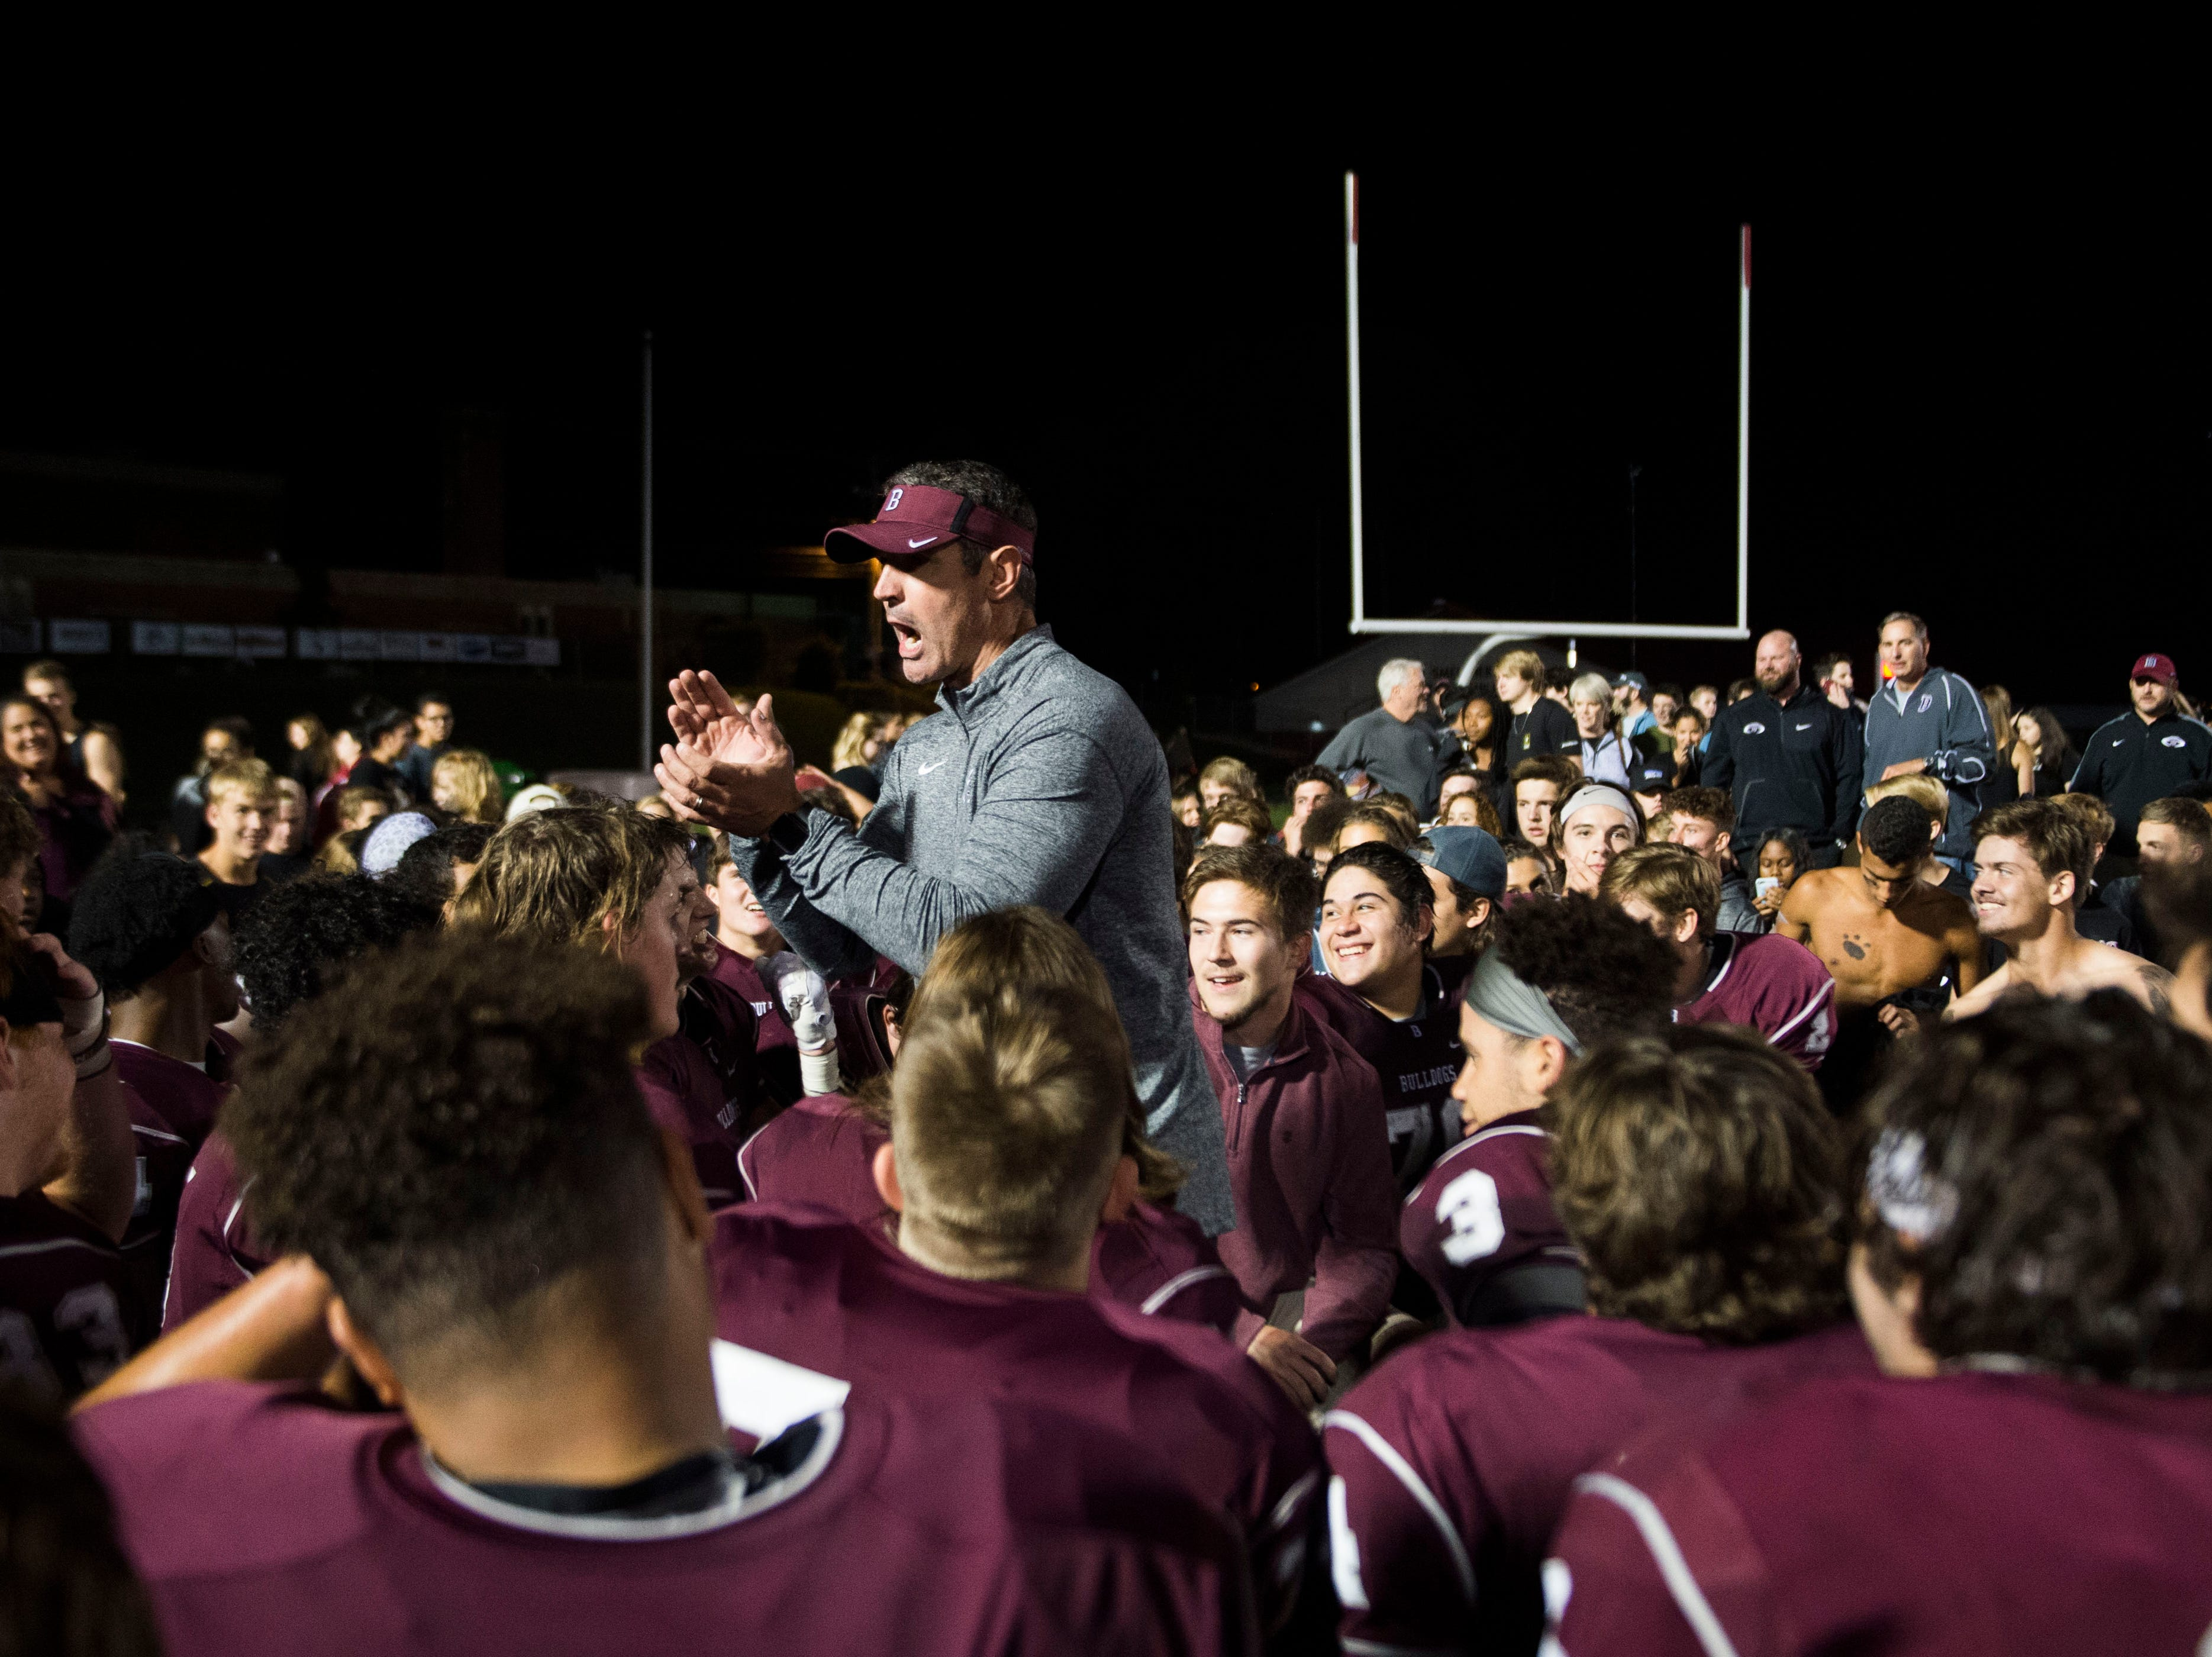 Bearden's head coach Morgan Shinlever talks to players after a game between Bearden and Farragut at Bearden Thursday, Oct. 11, 2018. Bearden took down Farragut 17-13.